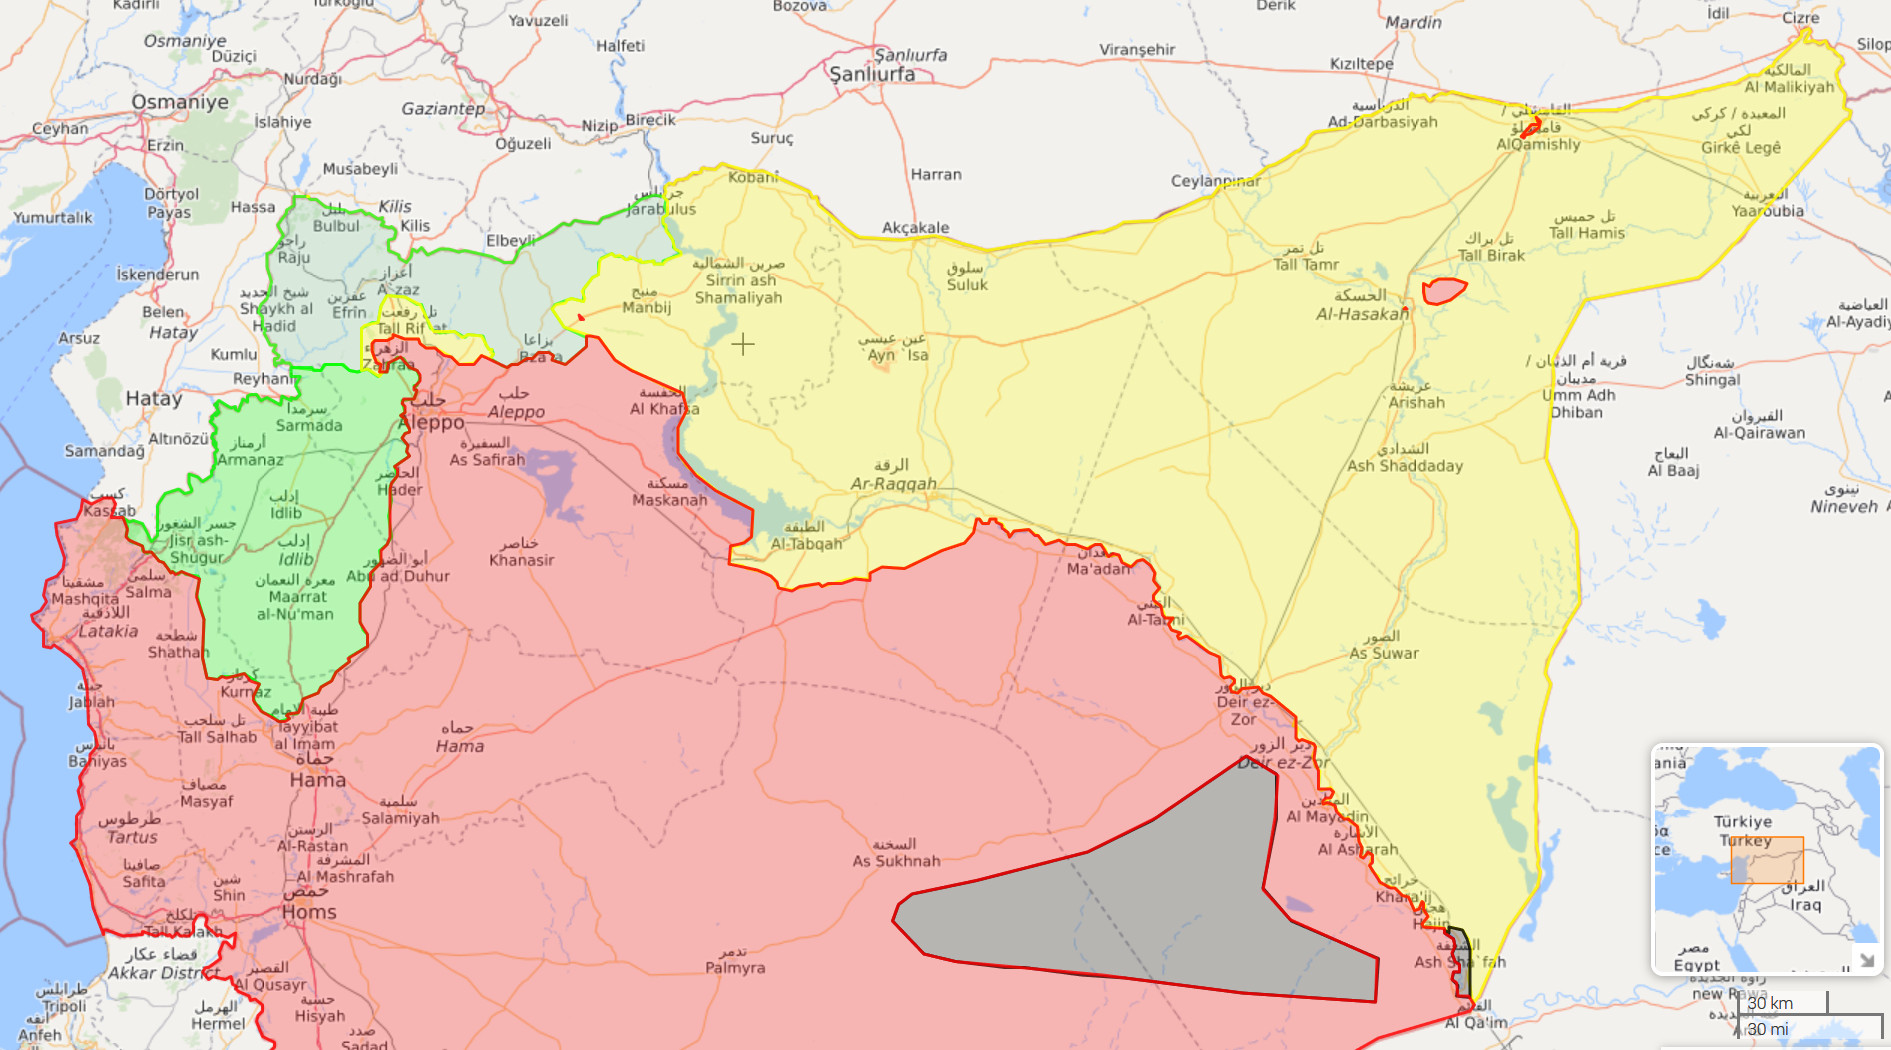 MoA - Syria - Turkey Fails In Idleb, Is Unwilling To Take ...